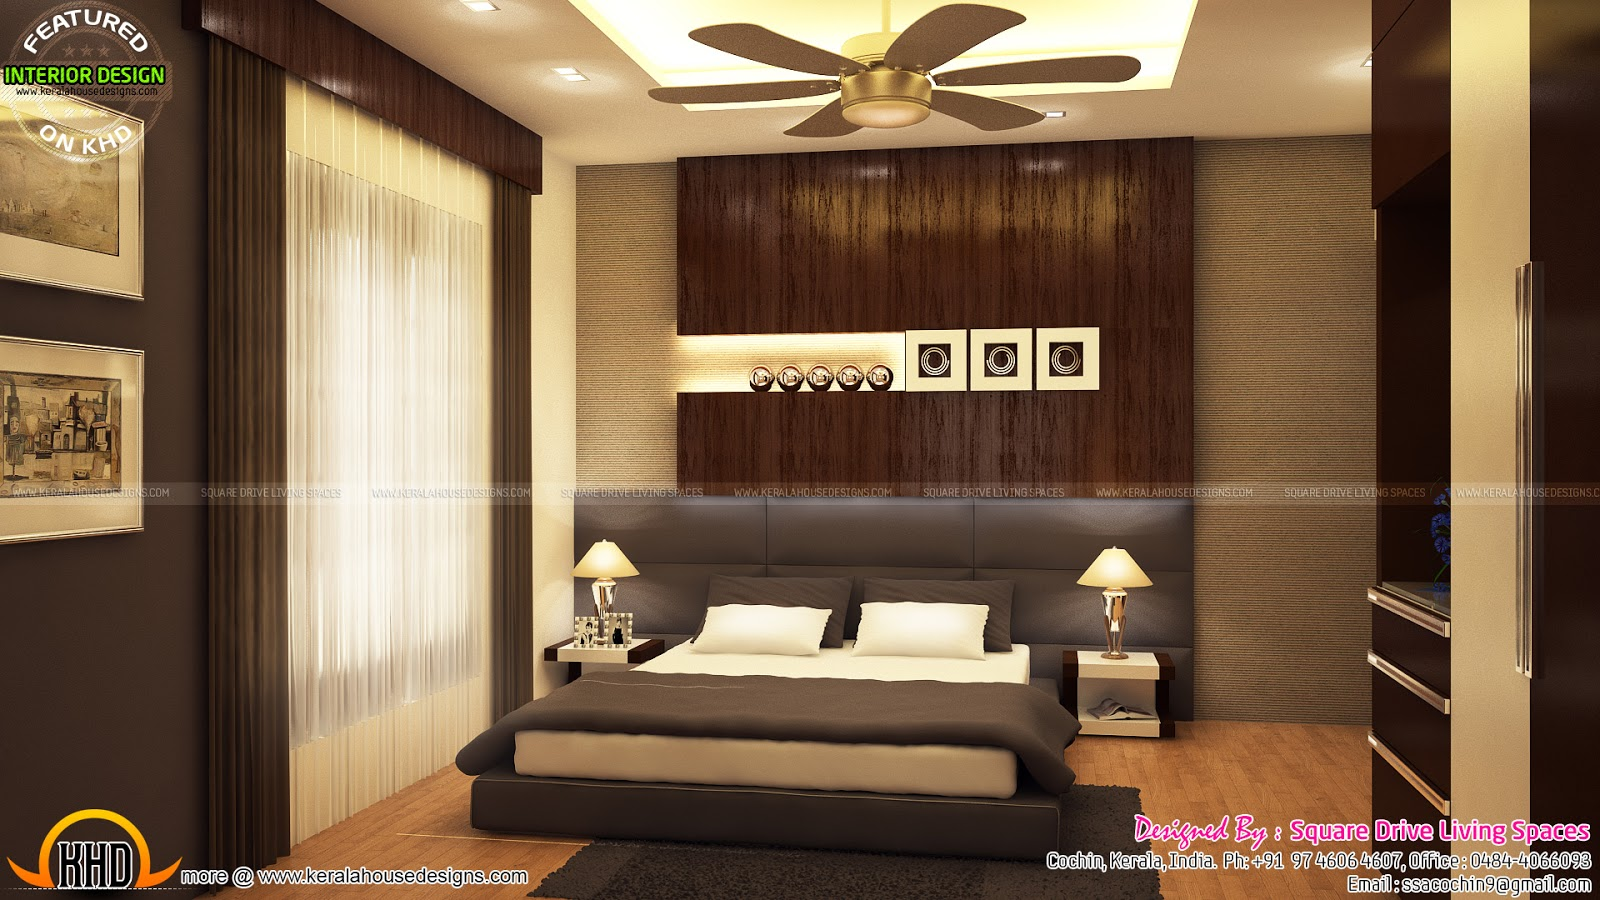 Interior designs of master bedroom living kitchen and for Household furniture design